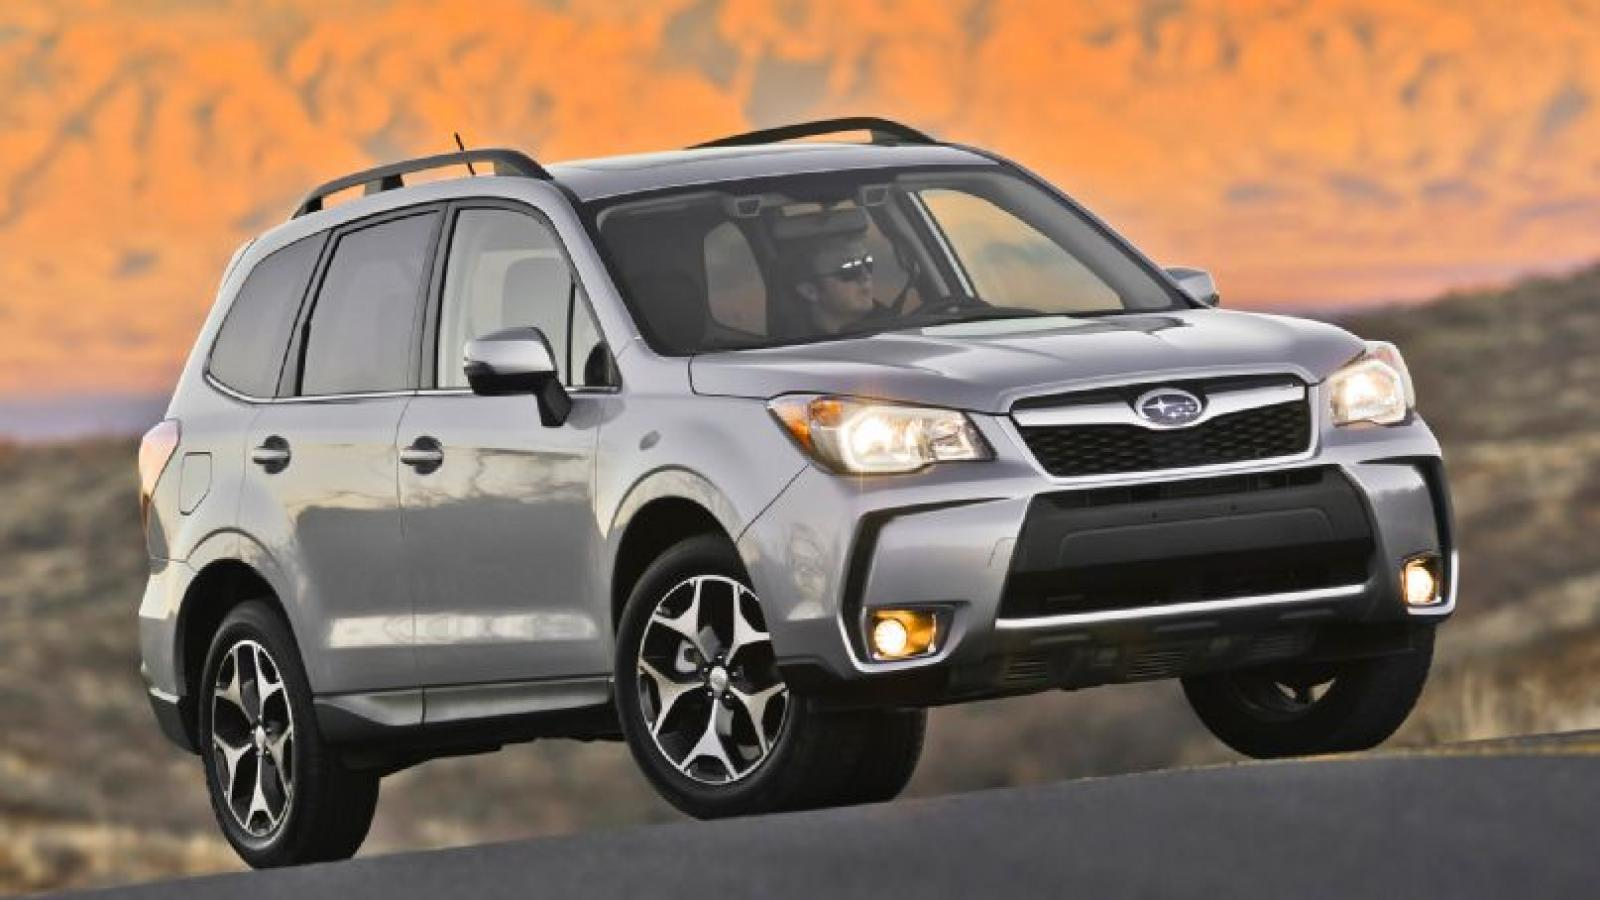 800 1024 1280 1600 origin 2015 Subaru Forester ...